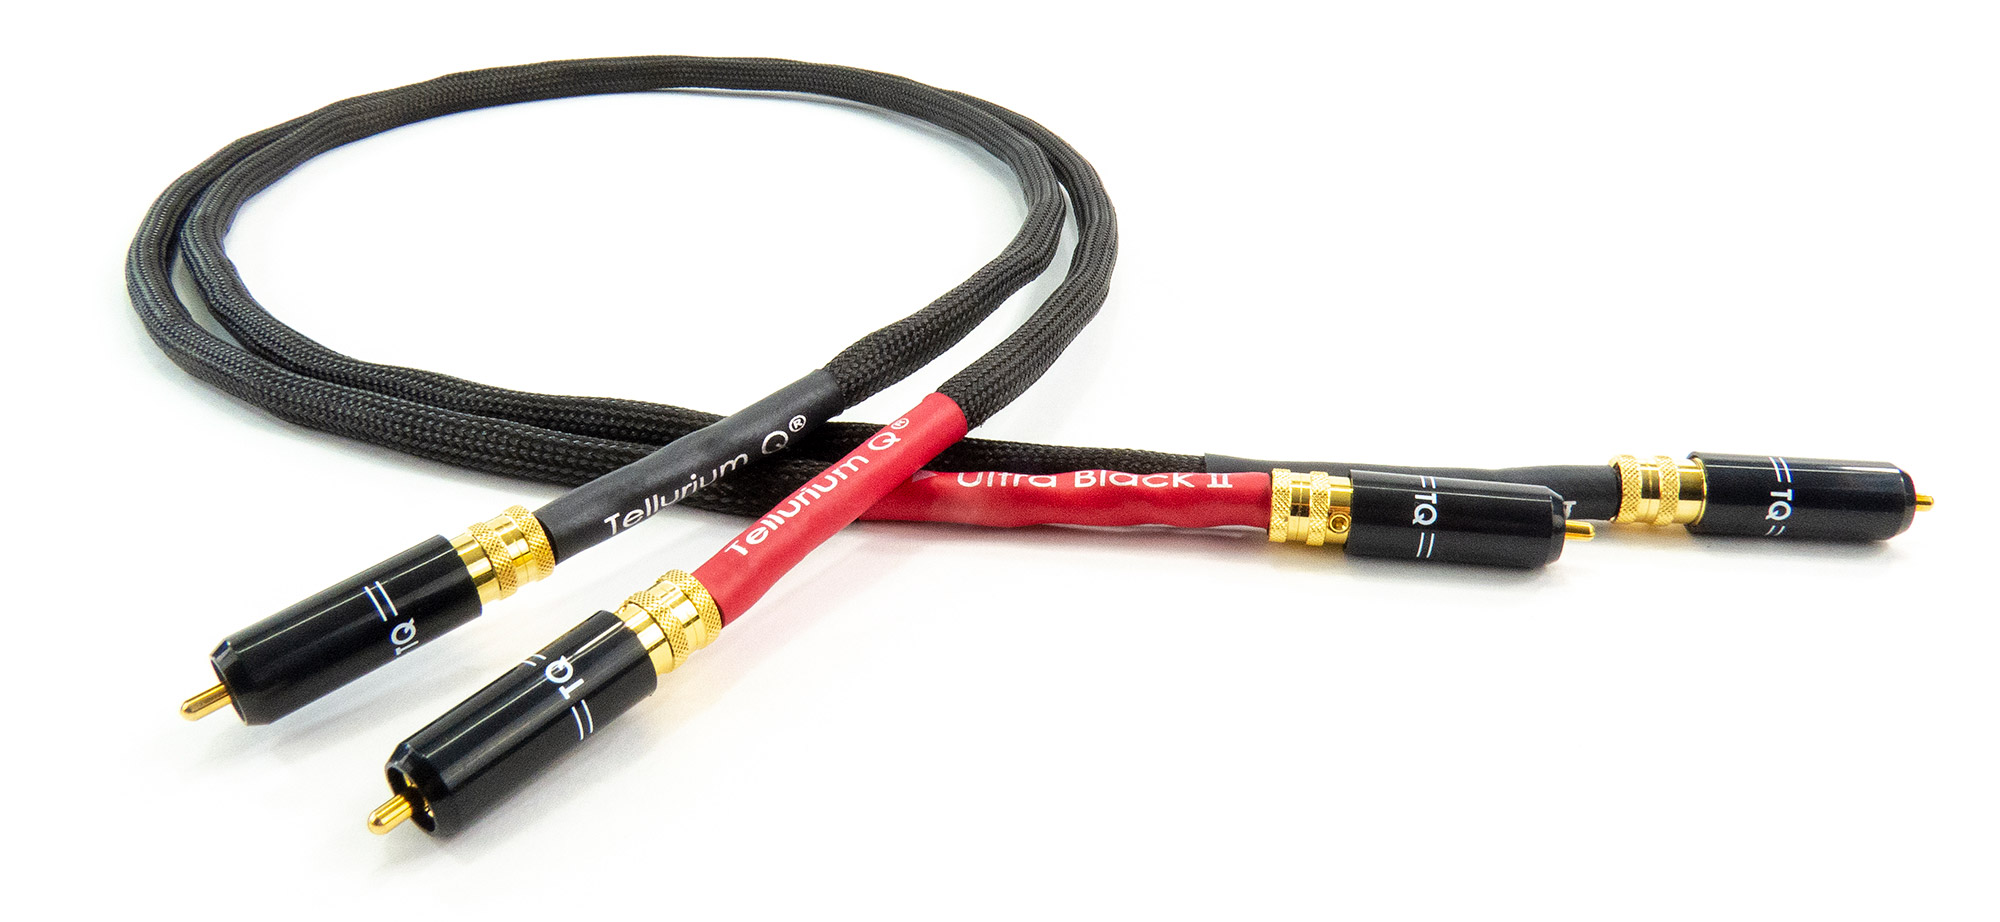 Ultra Black II RCA Cable